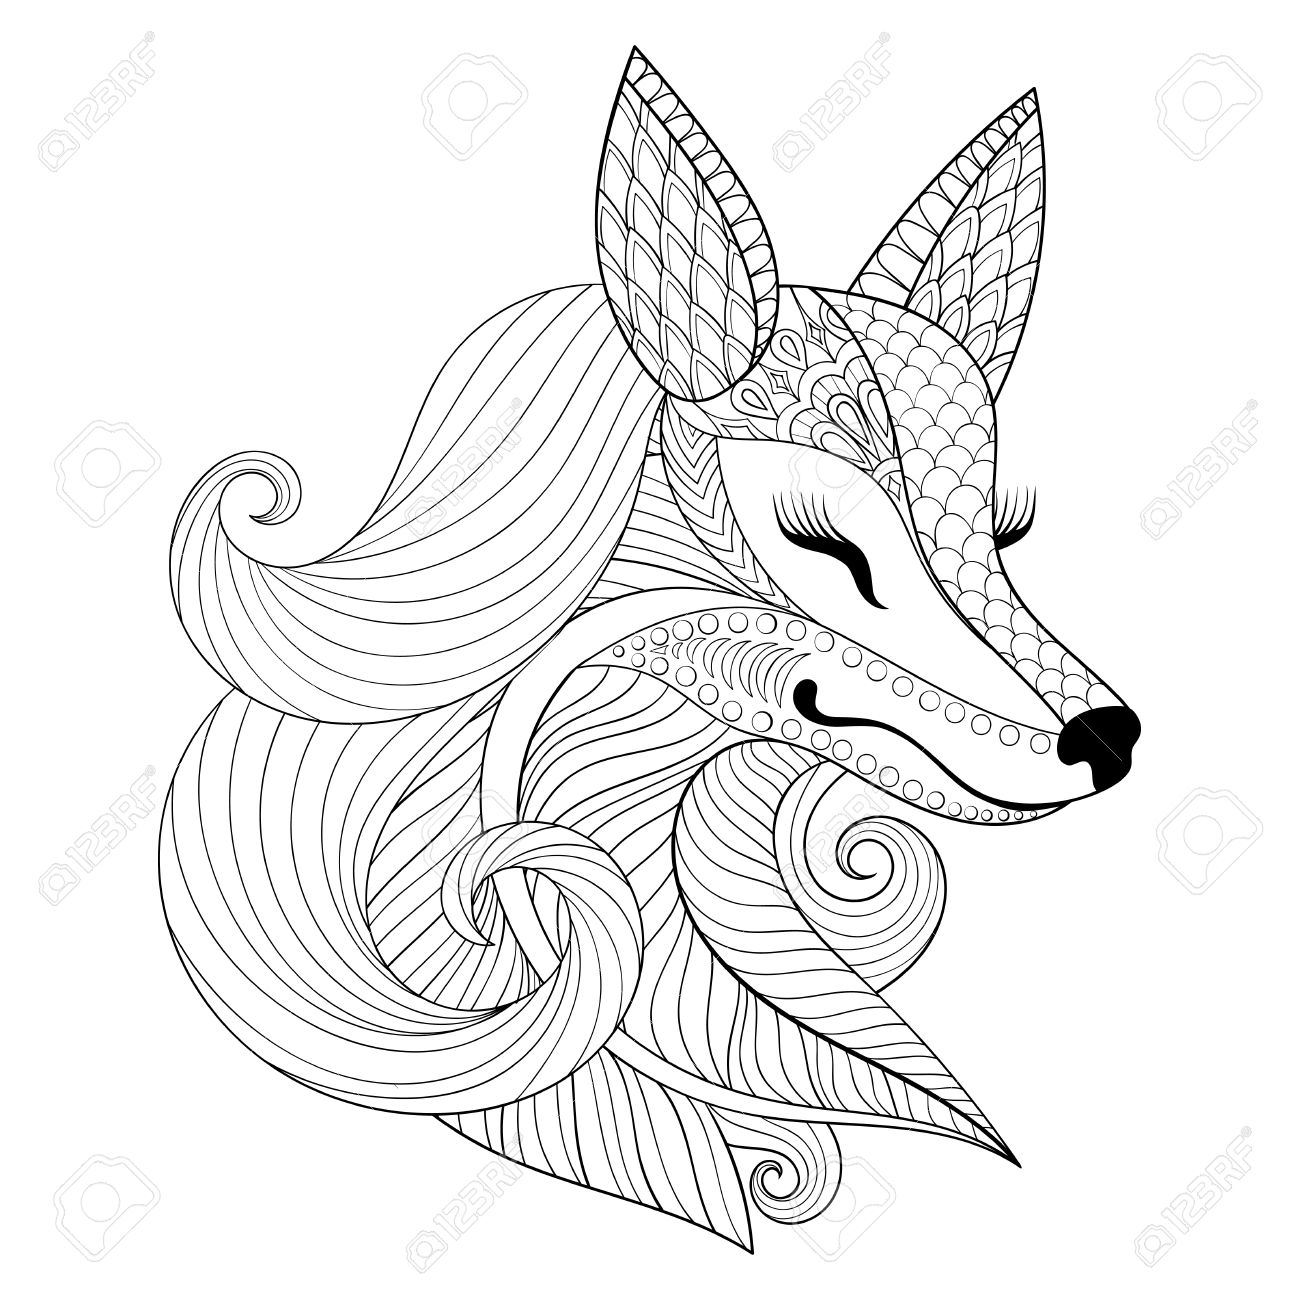 fox face in monochrome doodle style wild animal face illustration